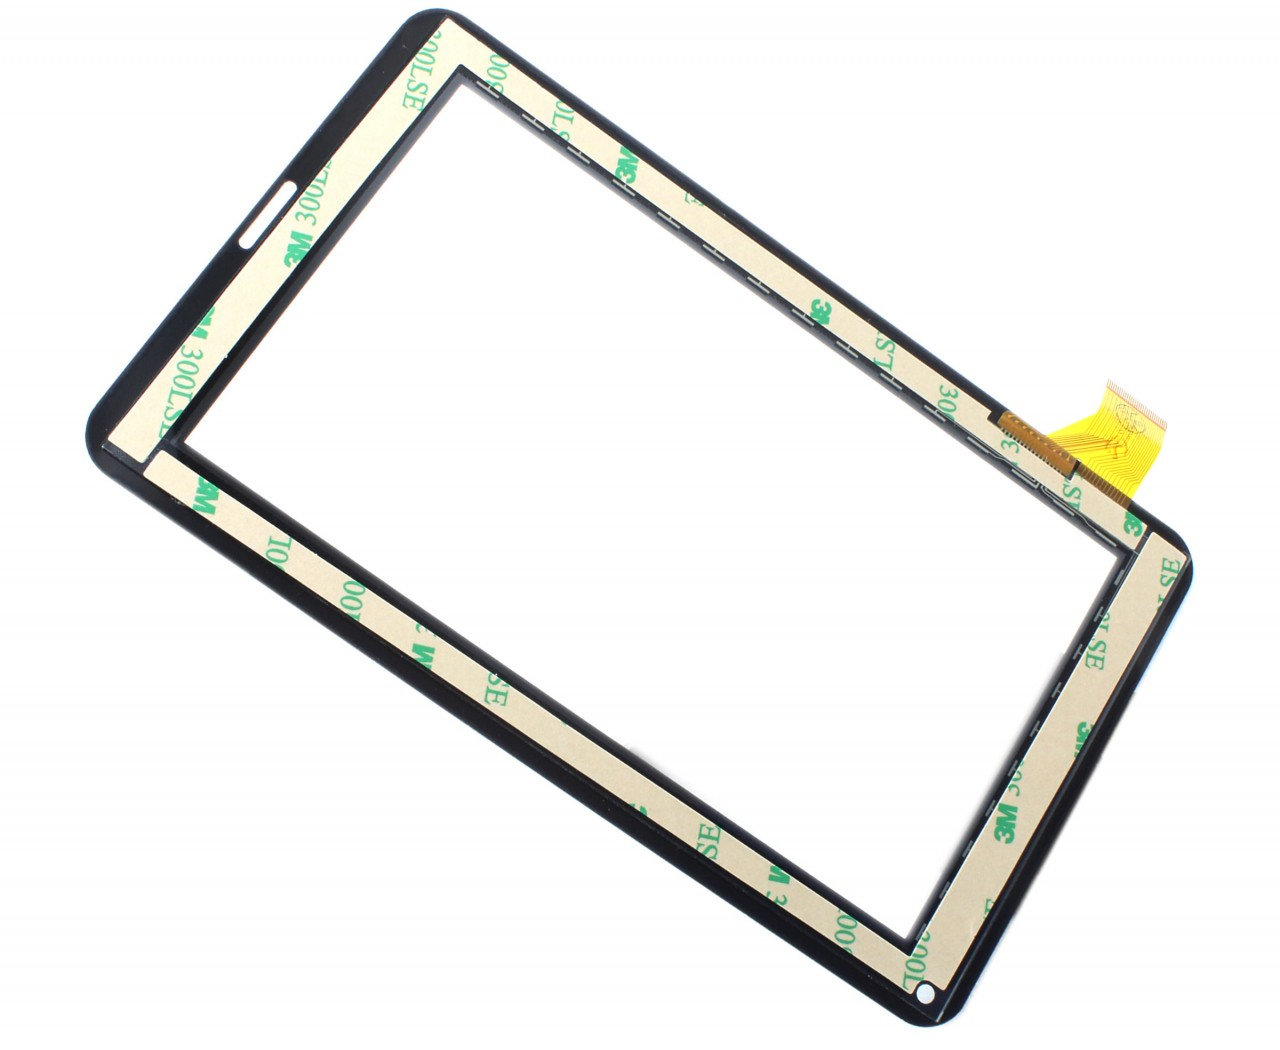 Touchscreen Digitizer Kurio C14150 Geam Sticla Tableta imagine powerlaptop.ro 2021